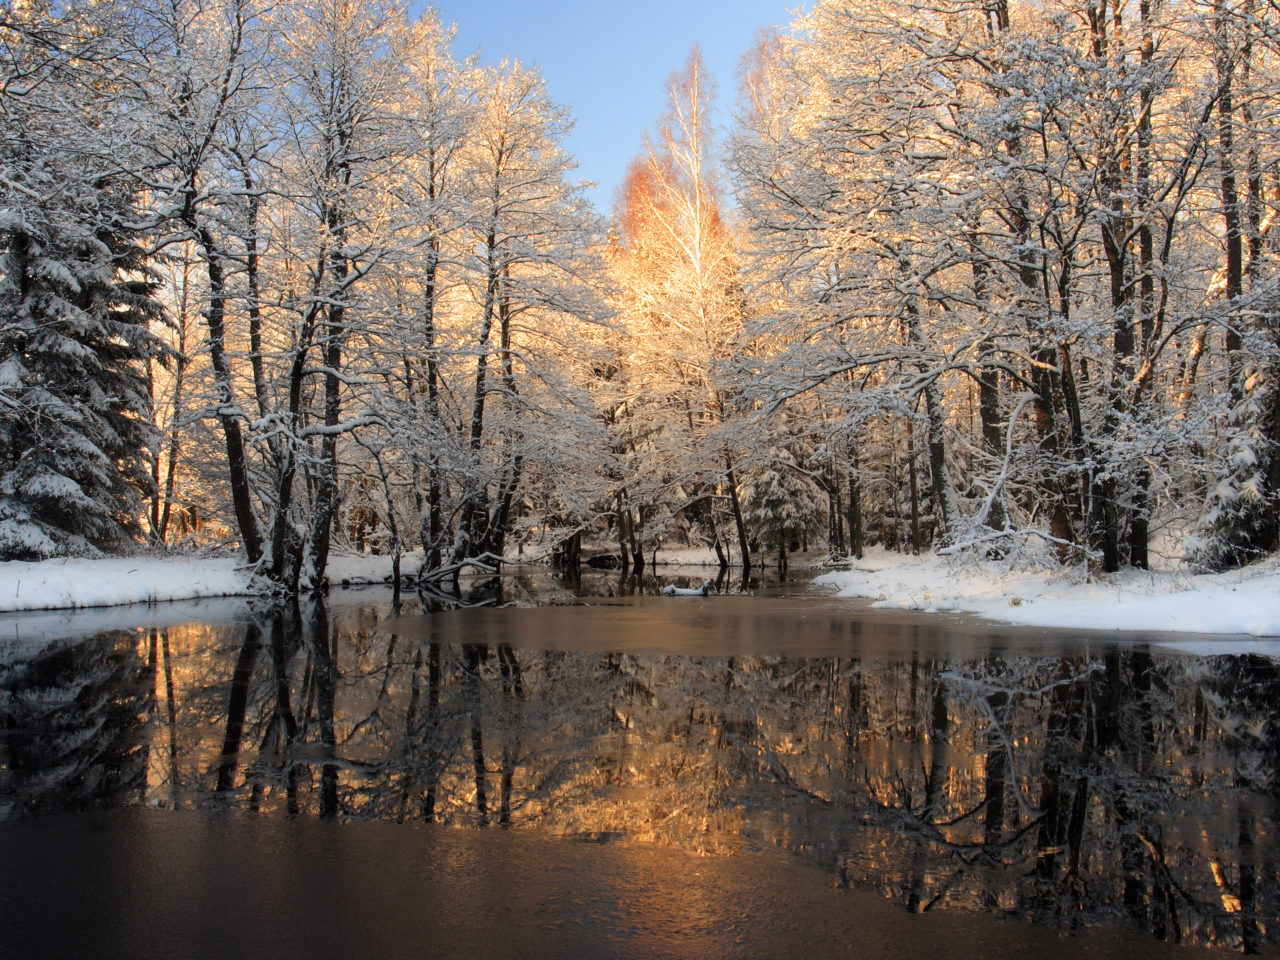 Donald Duck Iphone Wallpaper Winter Trees Covered With Snow Frozen Lake Background